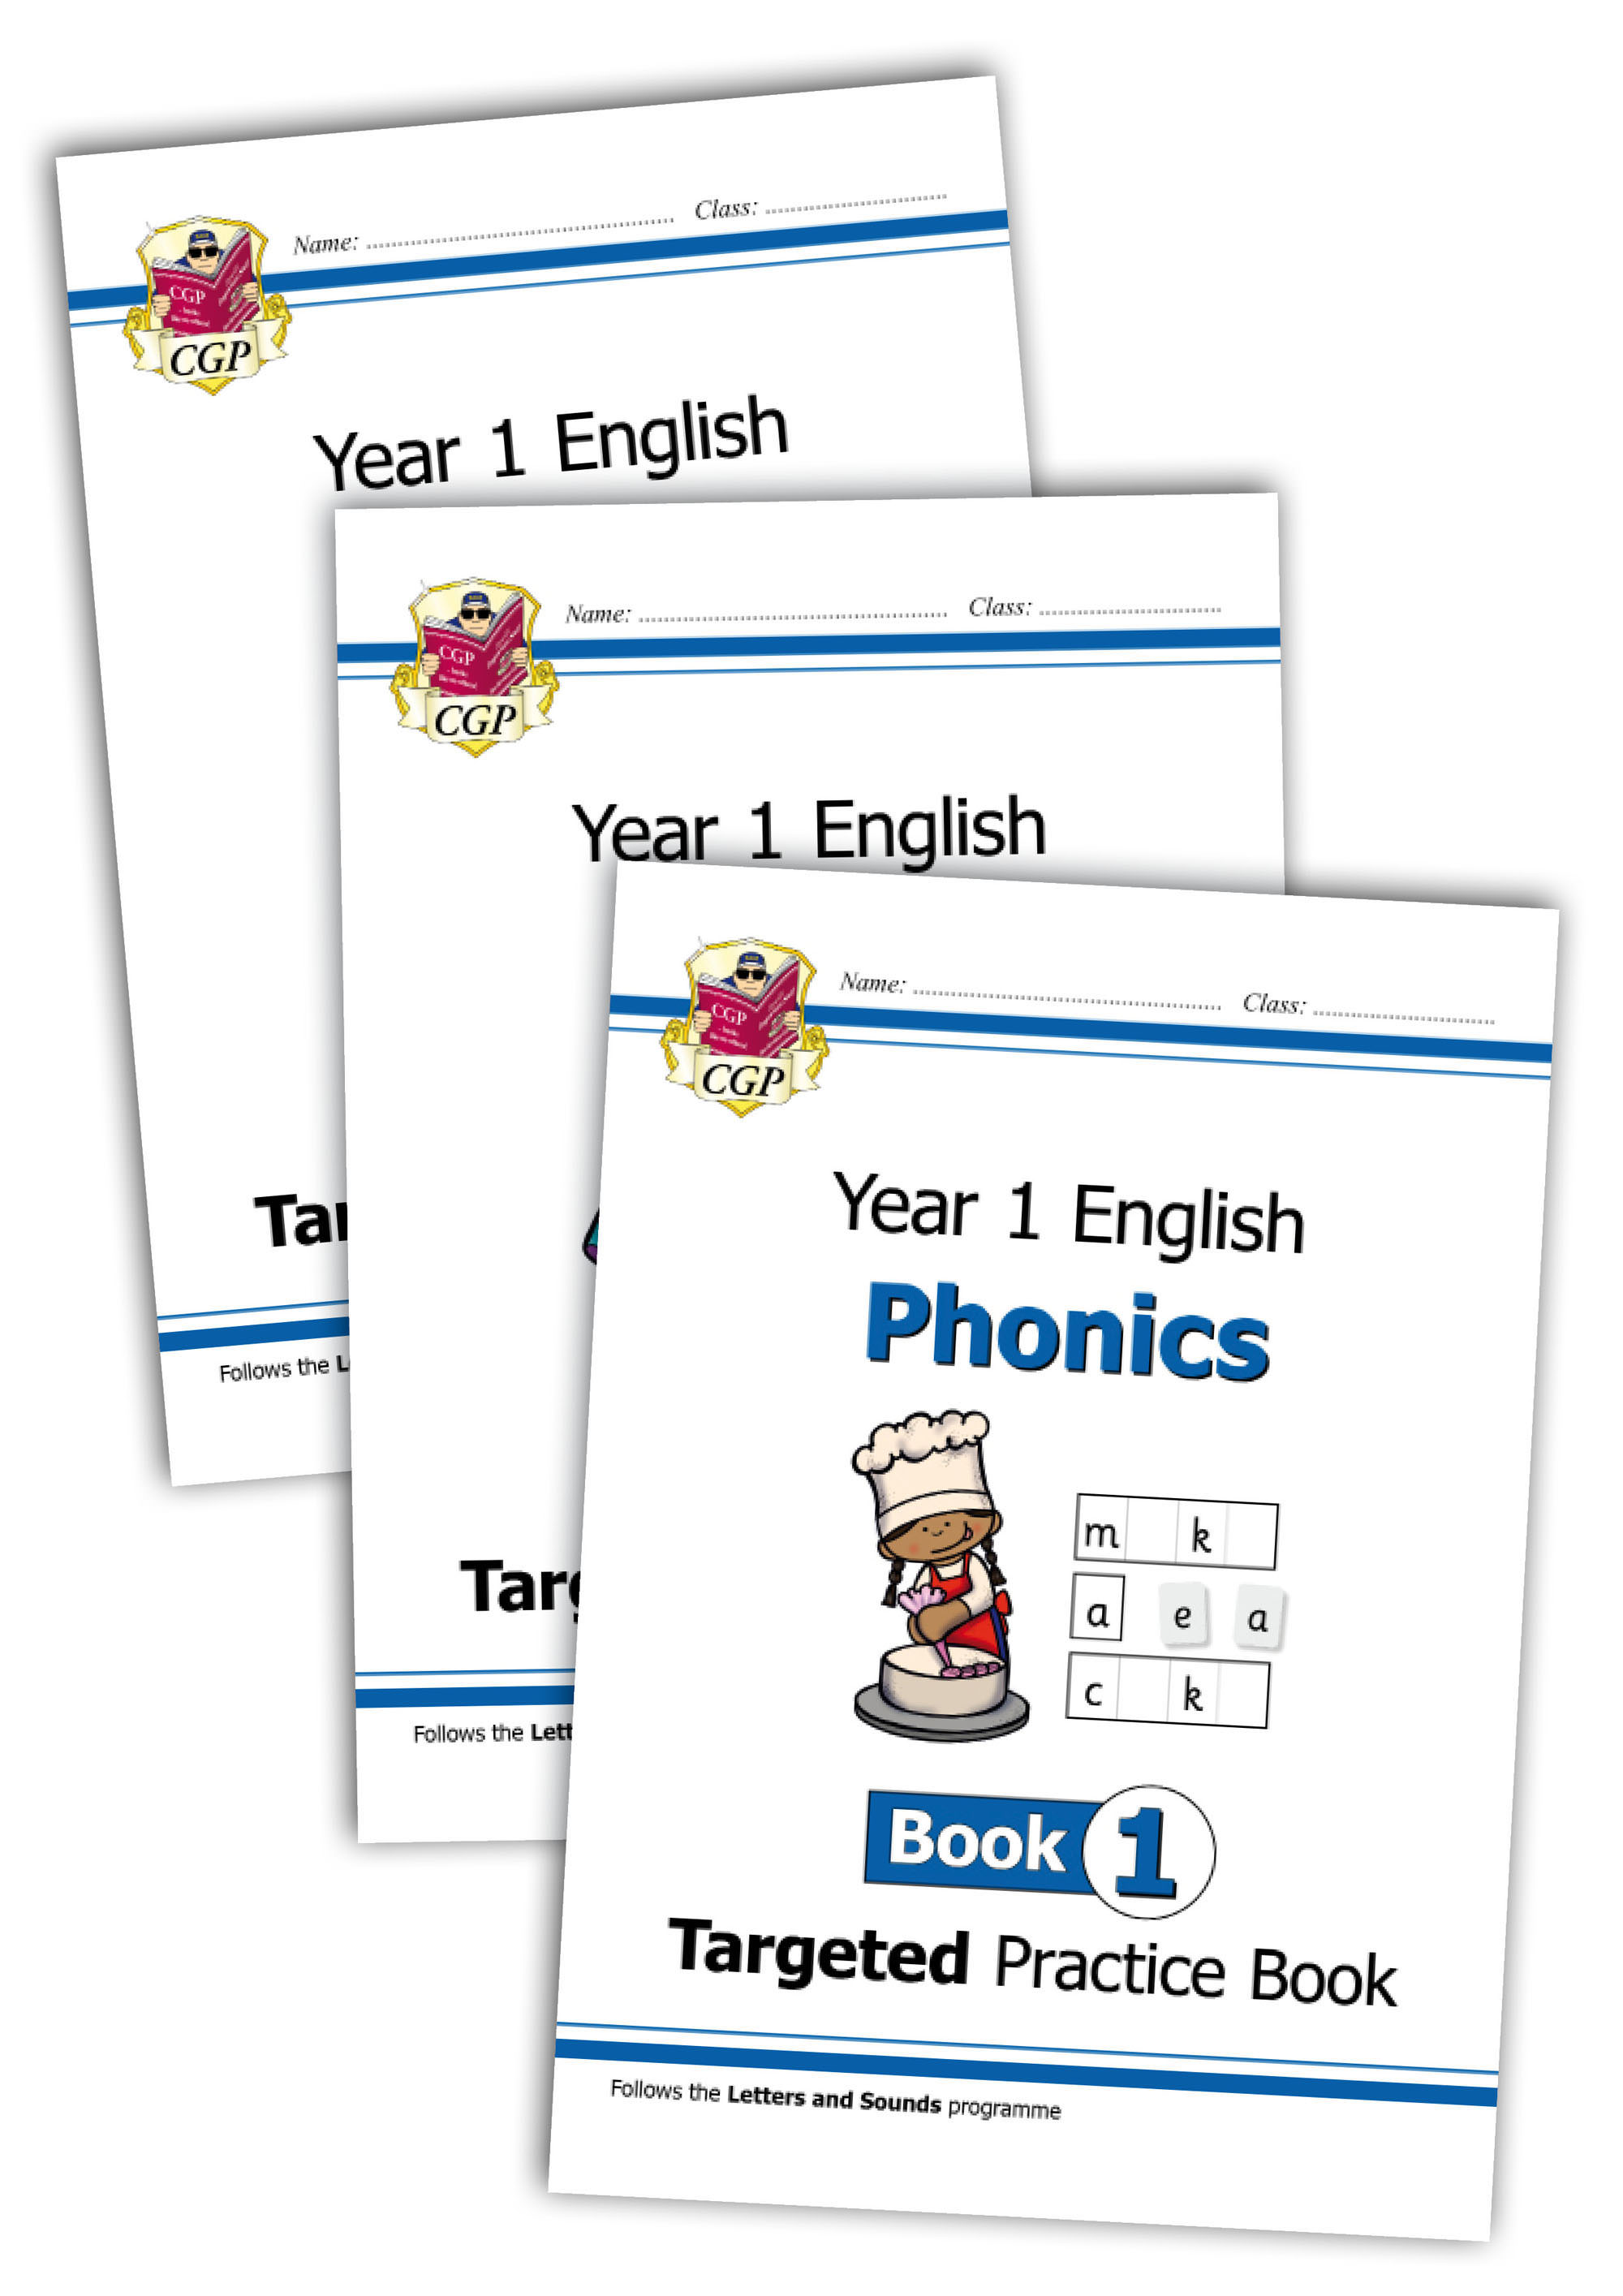 E1OWB11 - New KS1 English Targeted Practice Book Bundle: Phonics - Year 1 Books 1-3